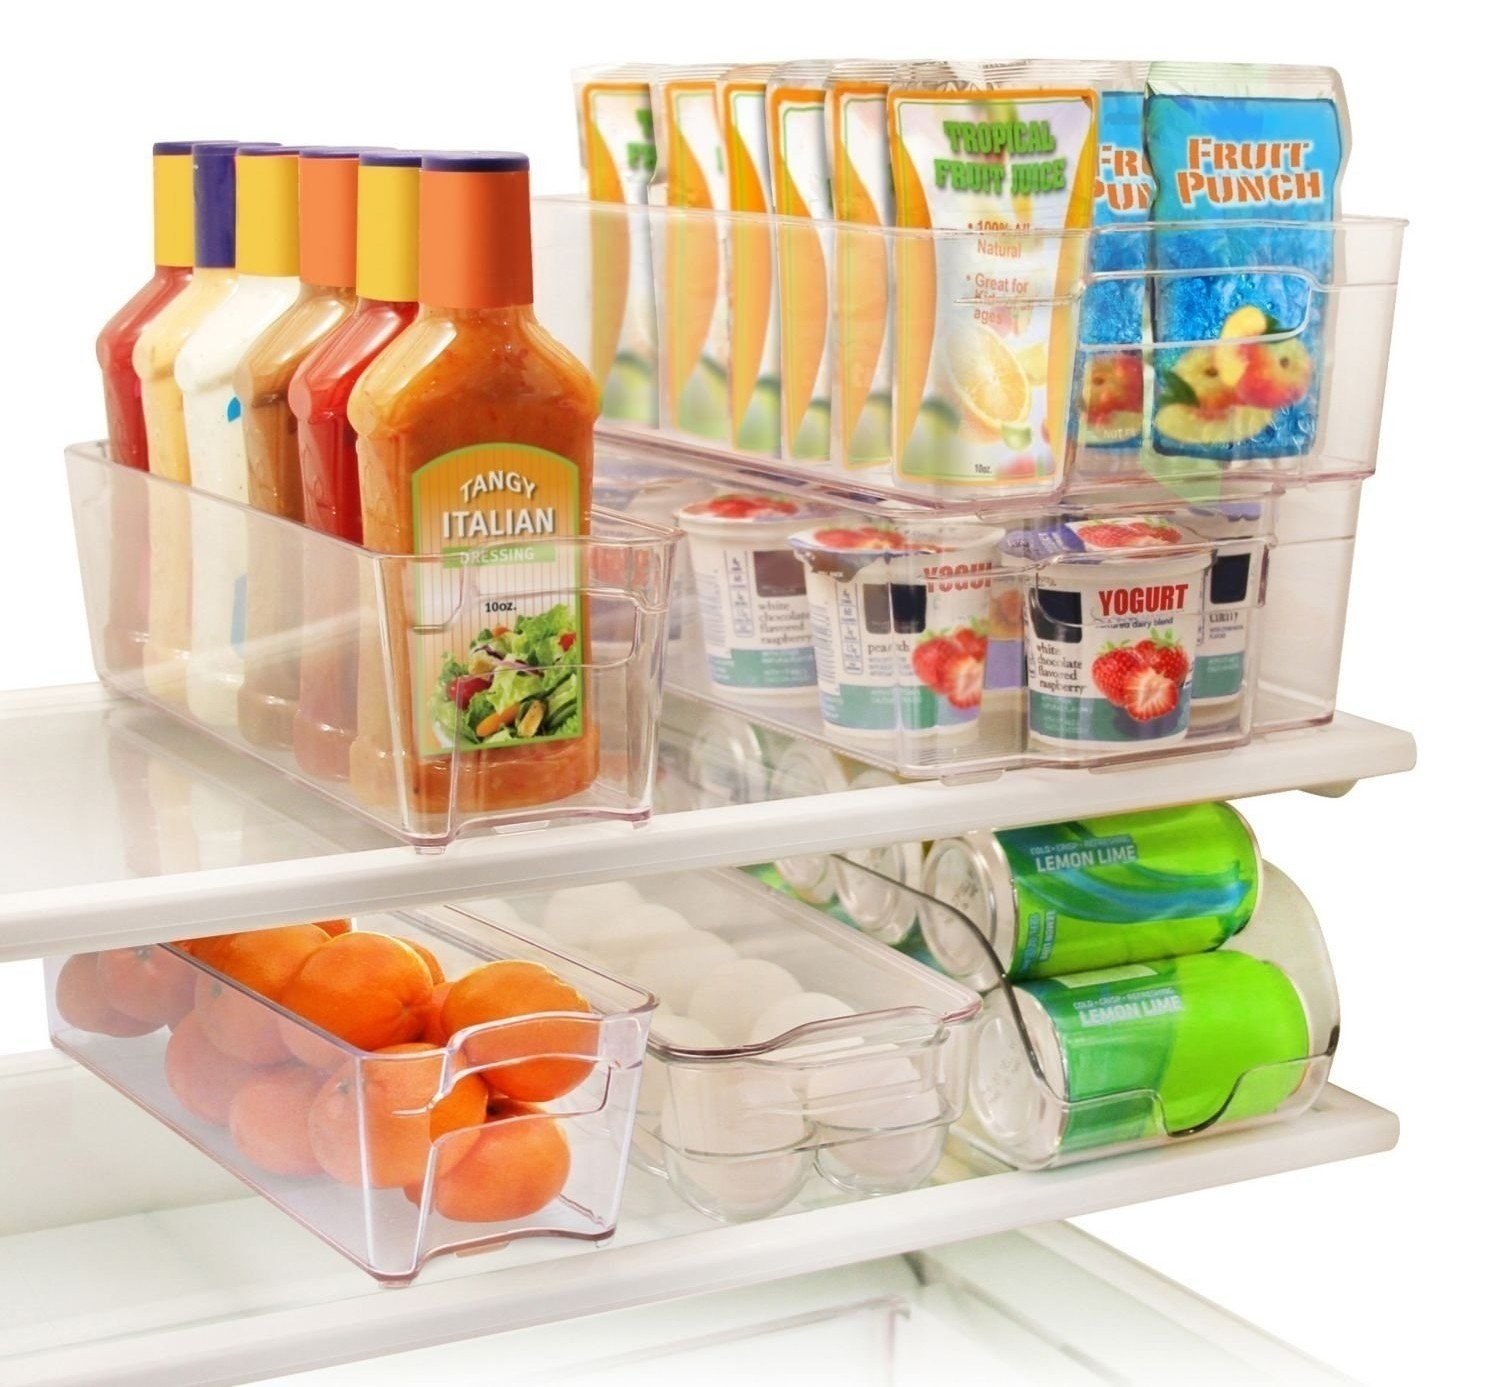 Fridge set with six different containers for perfectly holding a variety of things like drinks, dressings, eggs, and yogurts